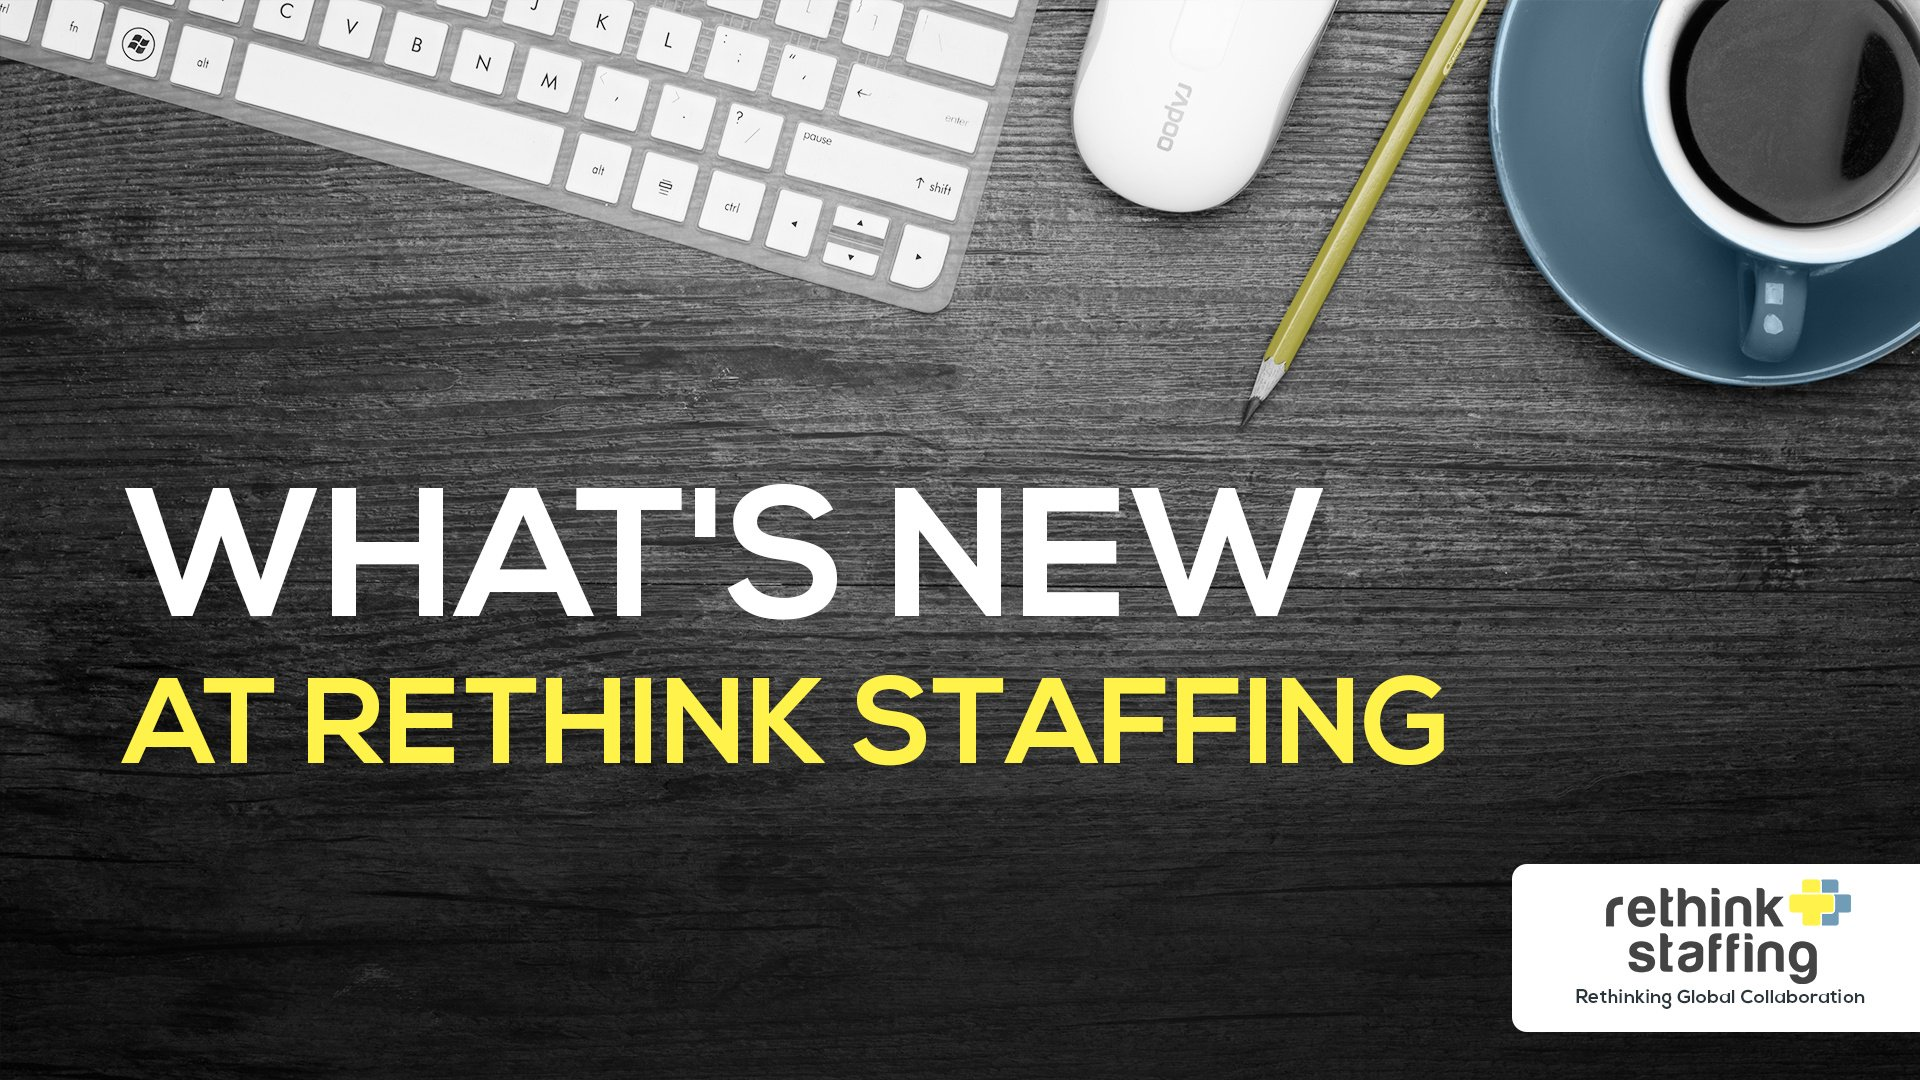 What is New at Rethink Staffing